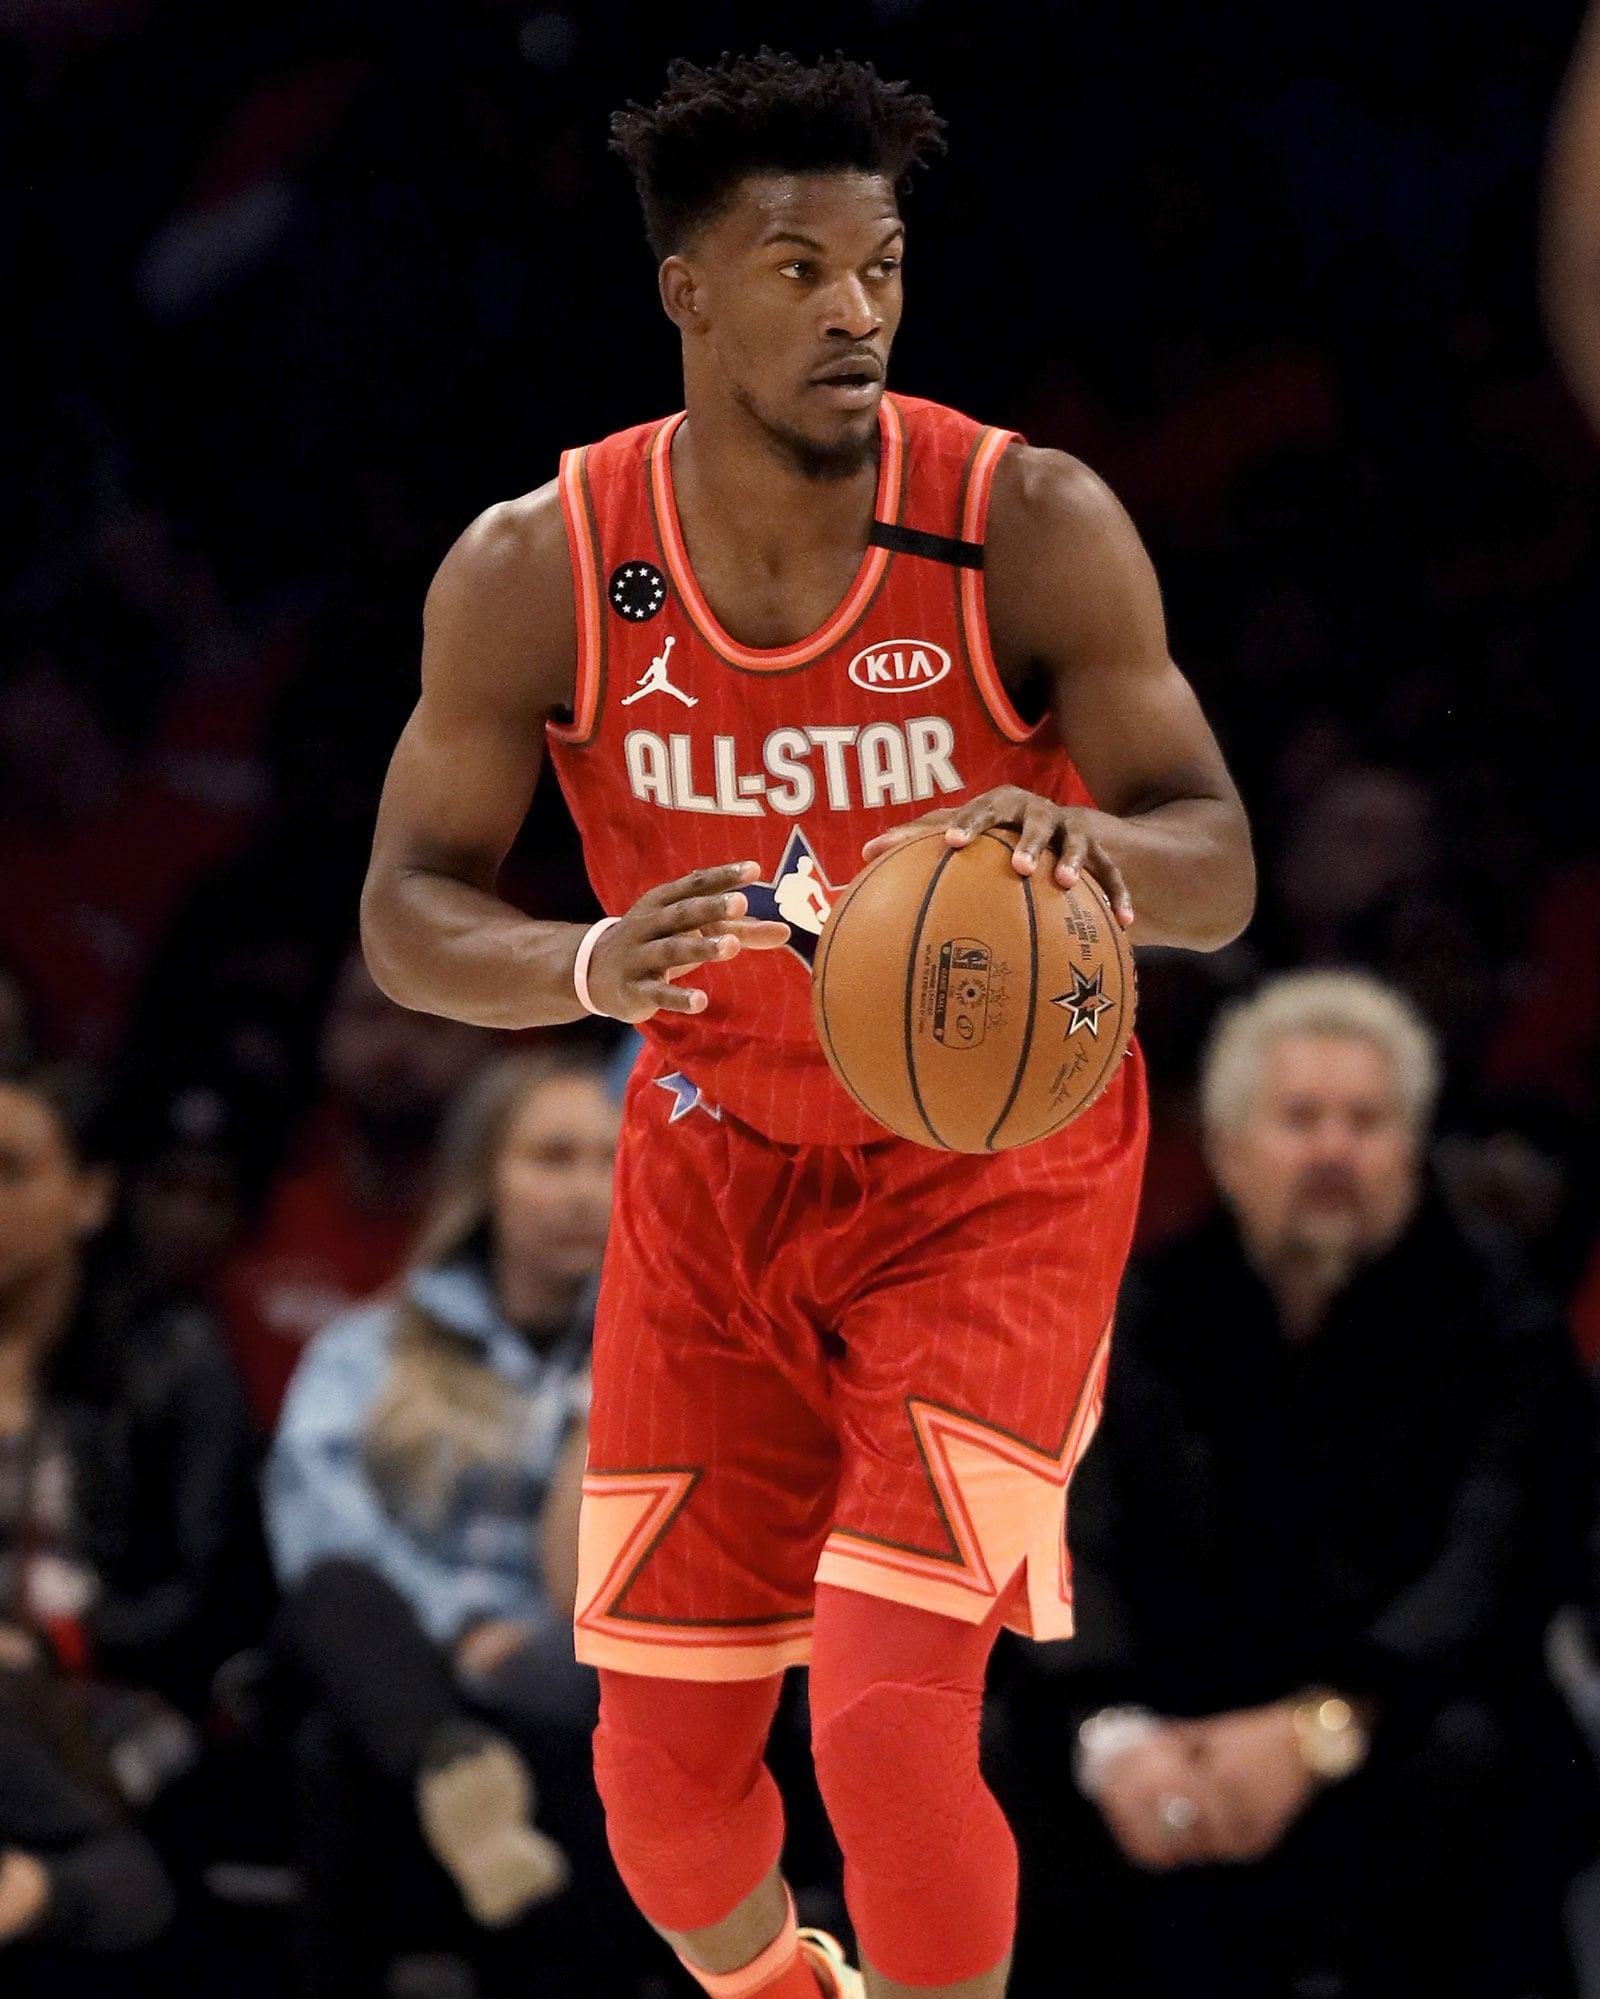 Miami Heat forward and former Bull Jimmy Butler had 4 points off the bench for Team Giannis.